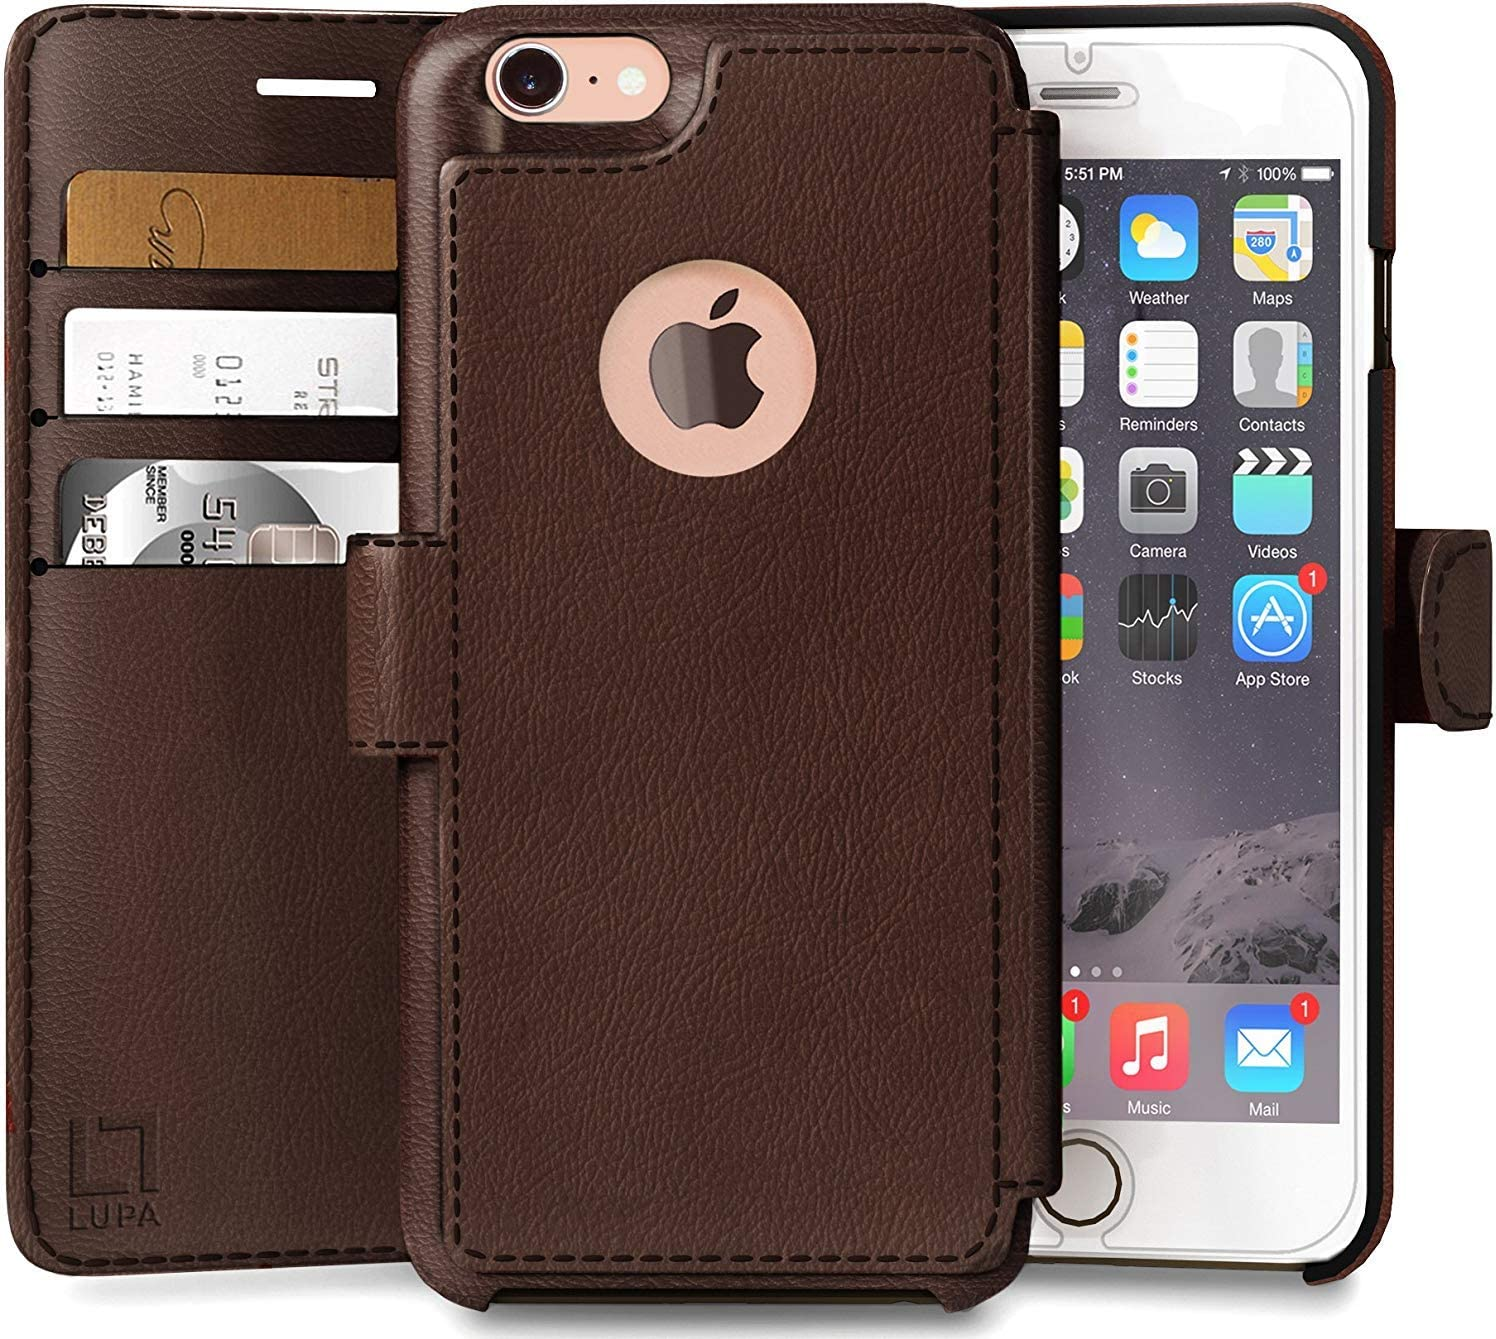 LUPA Wallet case for iPhone 8, Durable and Slim, Lightweight, Magnetic Closure, Faux Leather, Dark Brown